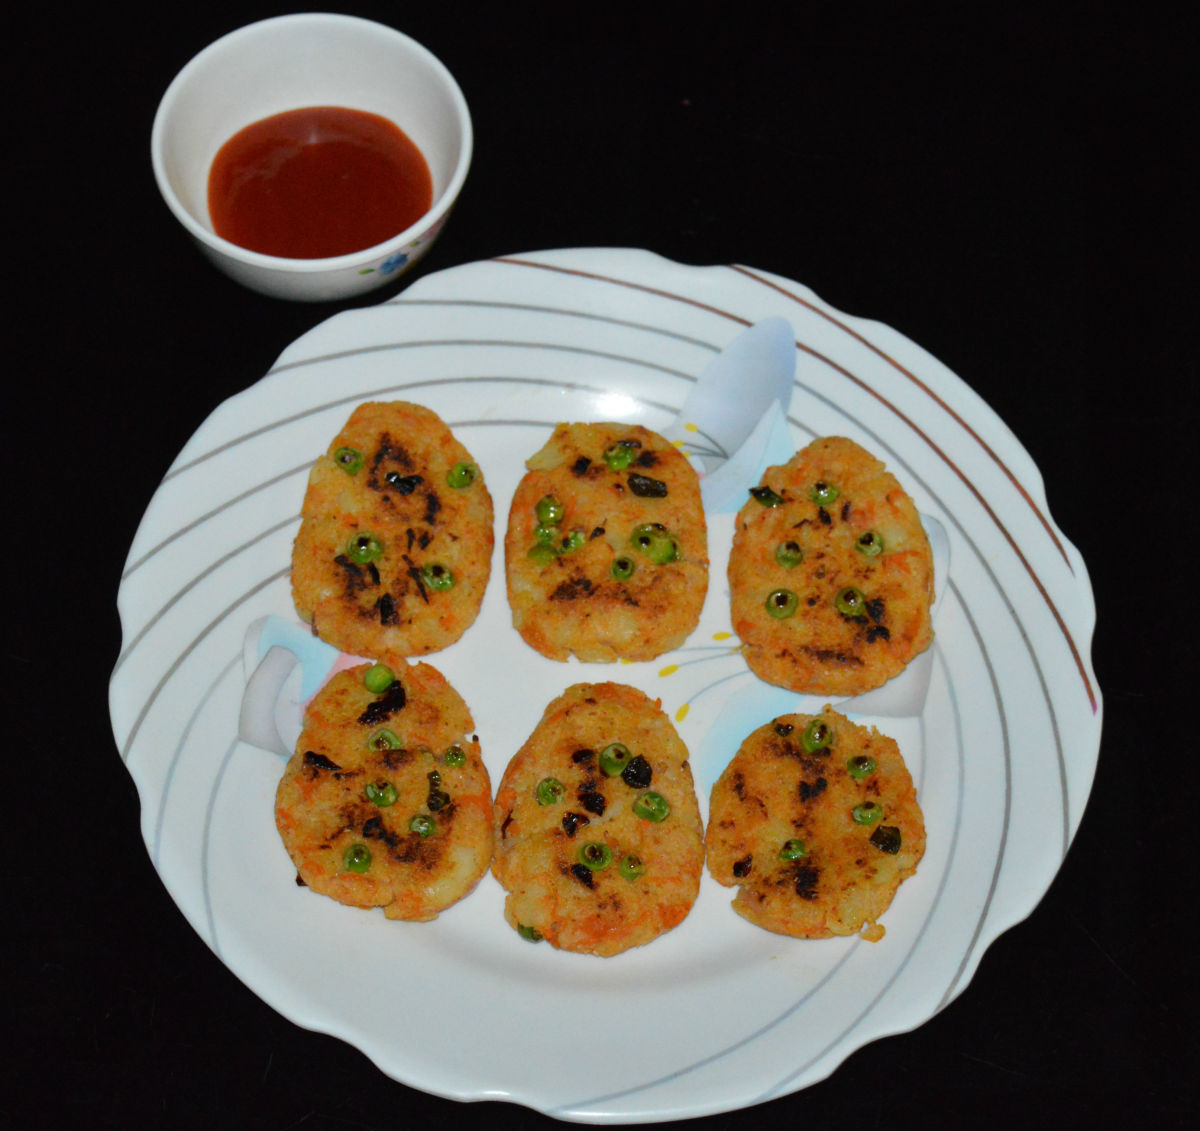 Serve hot idli cutlets with tomato ketchup on the side. Enjoy eating this yummy and nutritious snack!